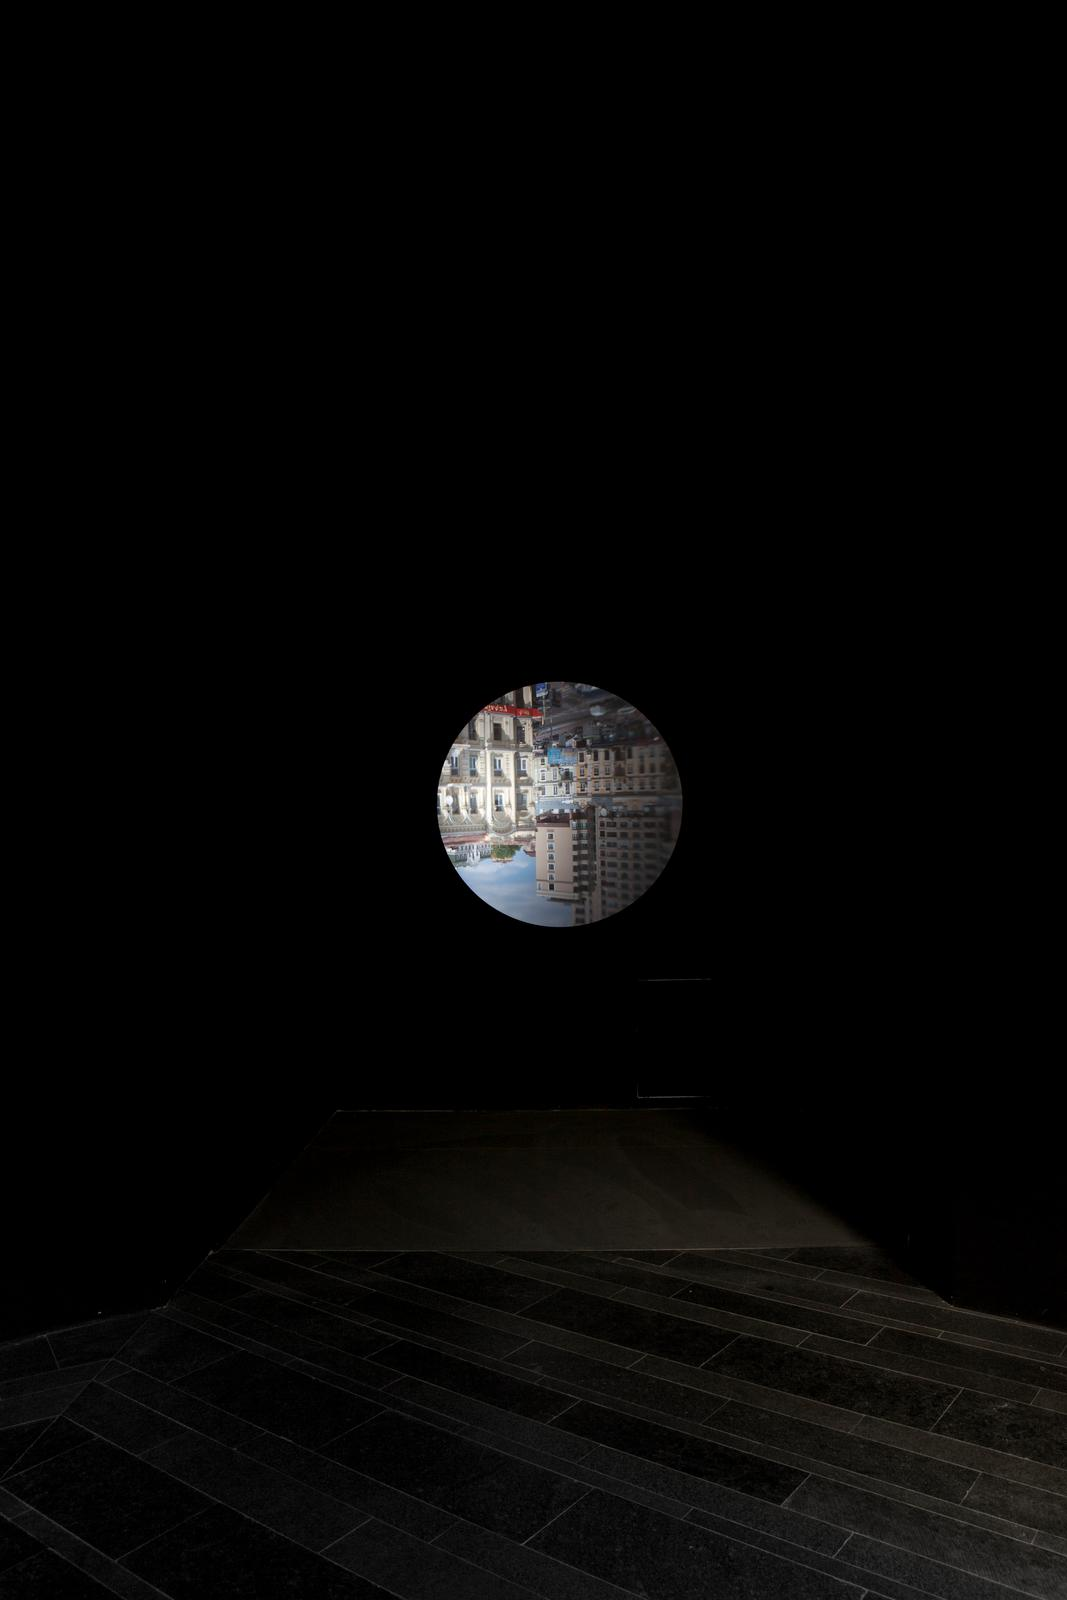 Camera Obscura Artwork Studio Olafur Eliasson